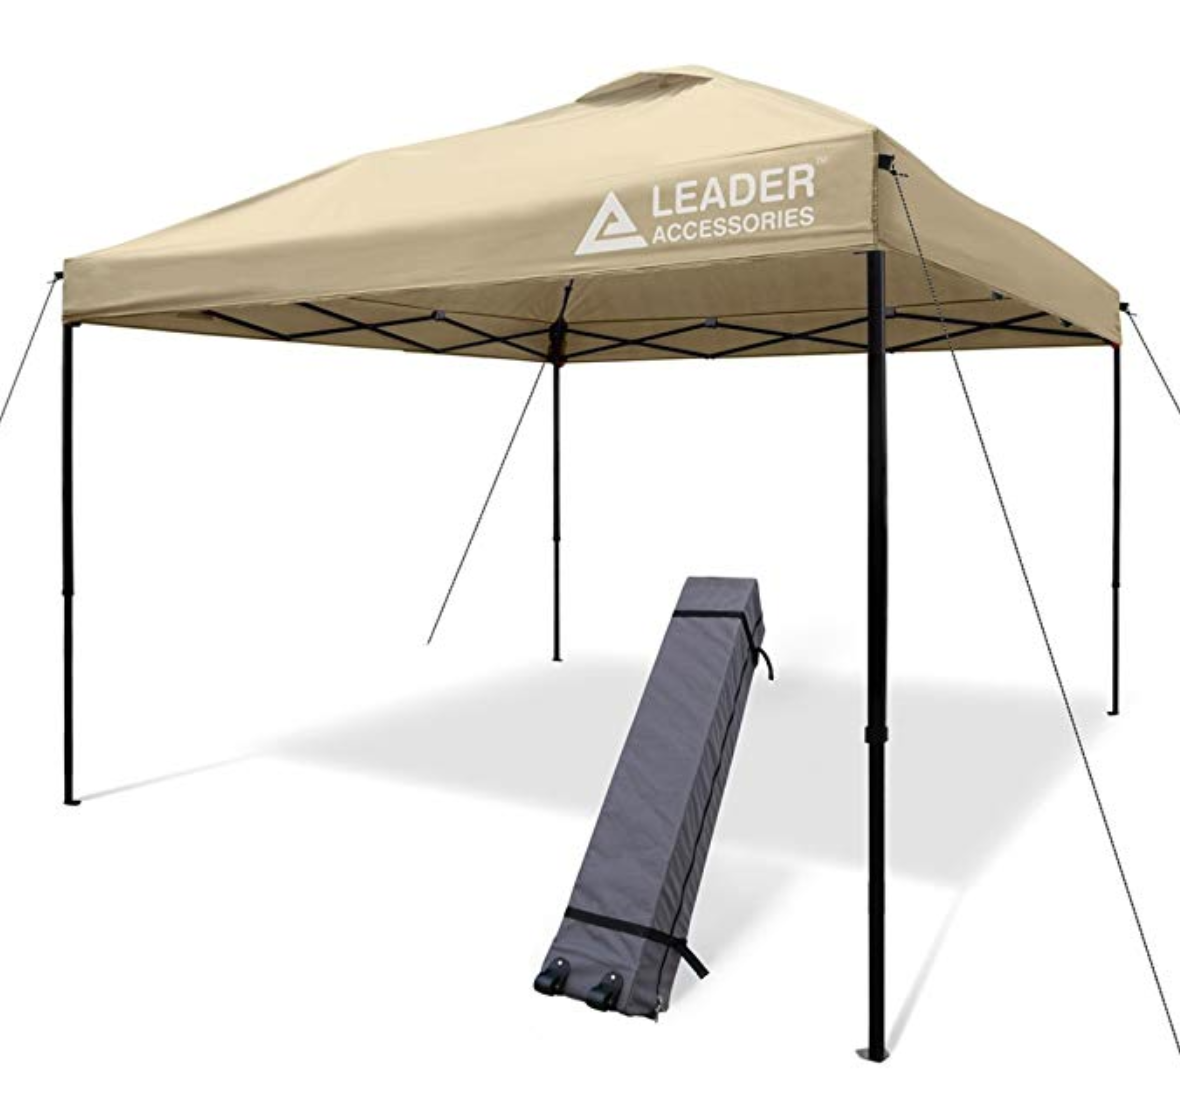 Leader Accessories Instant Canopy